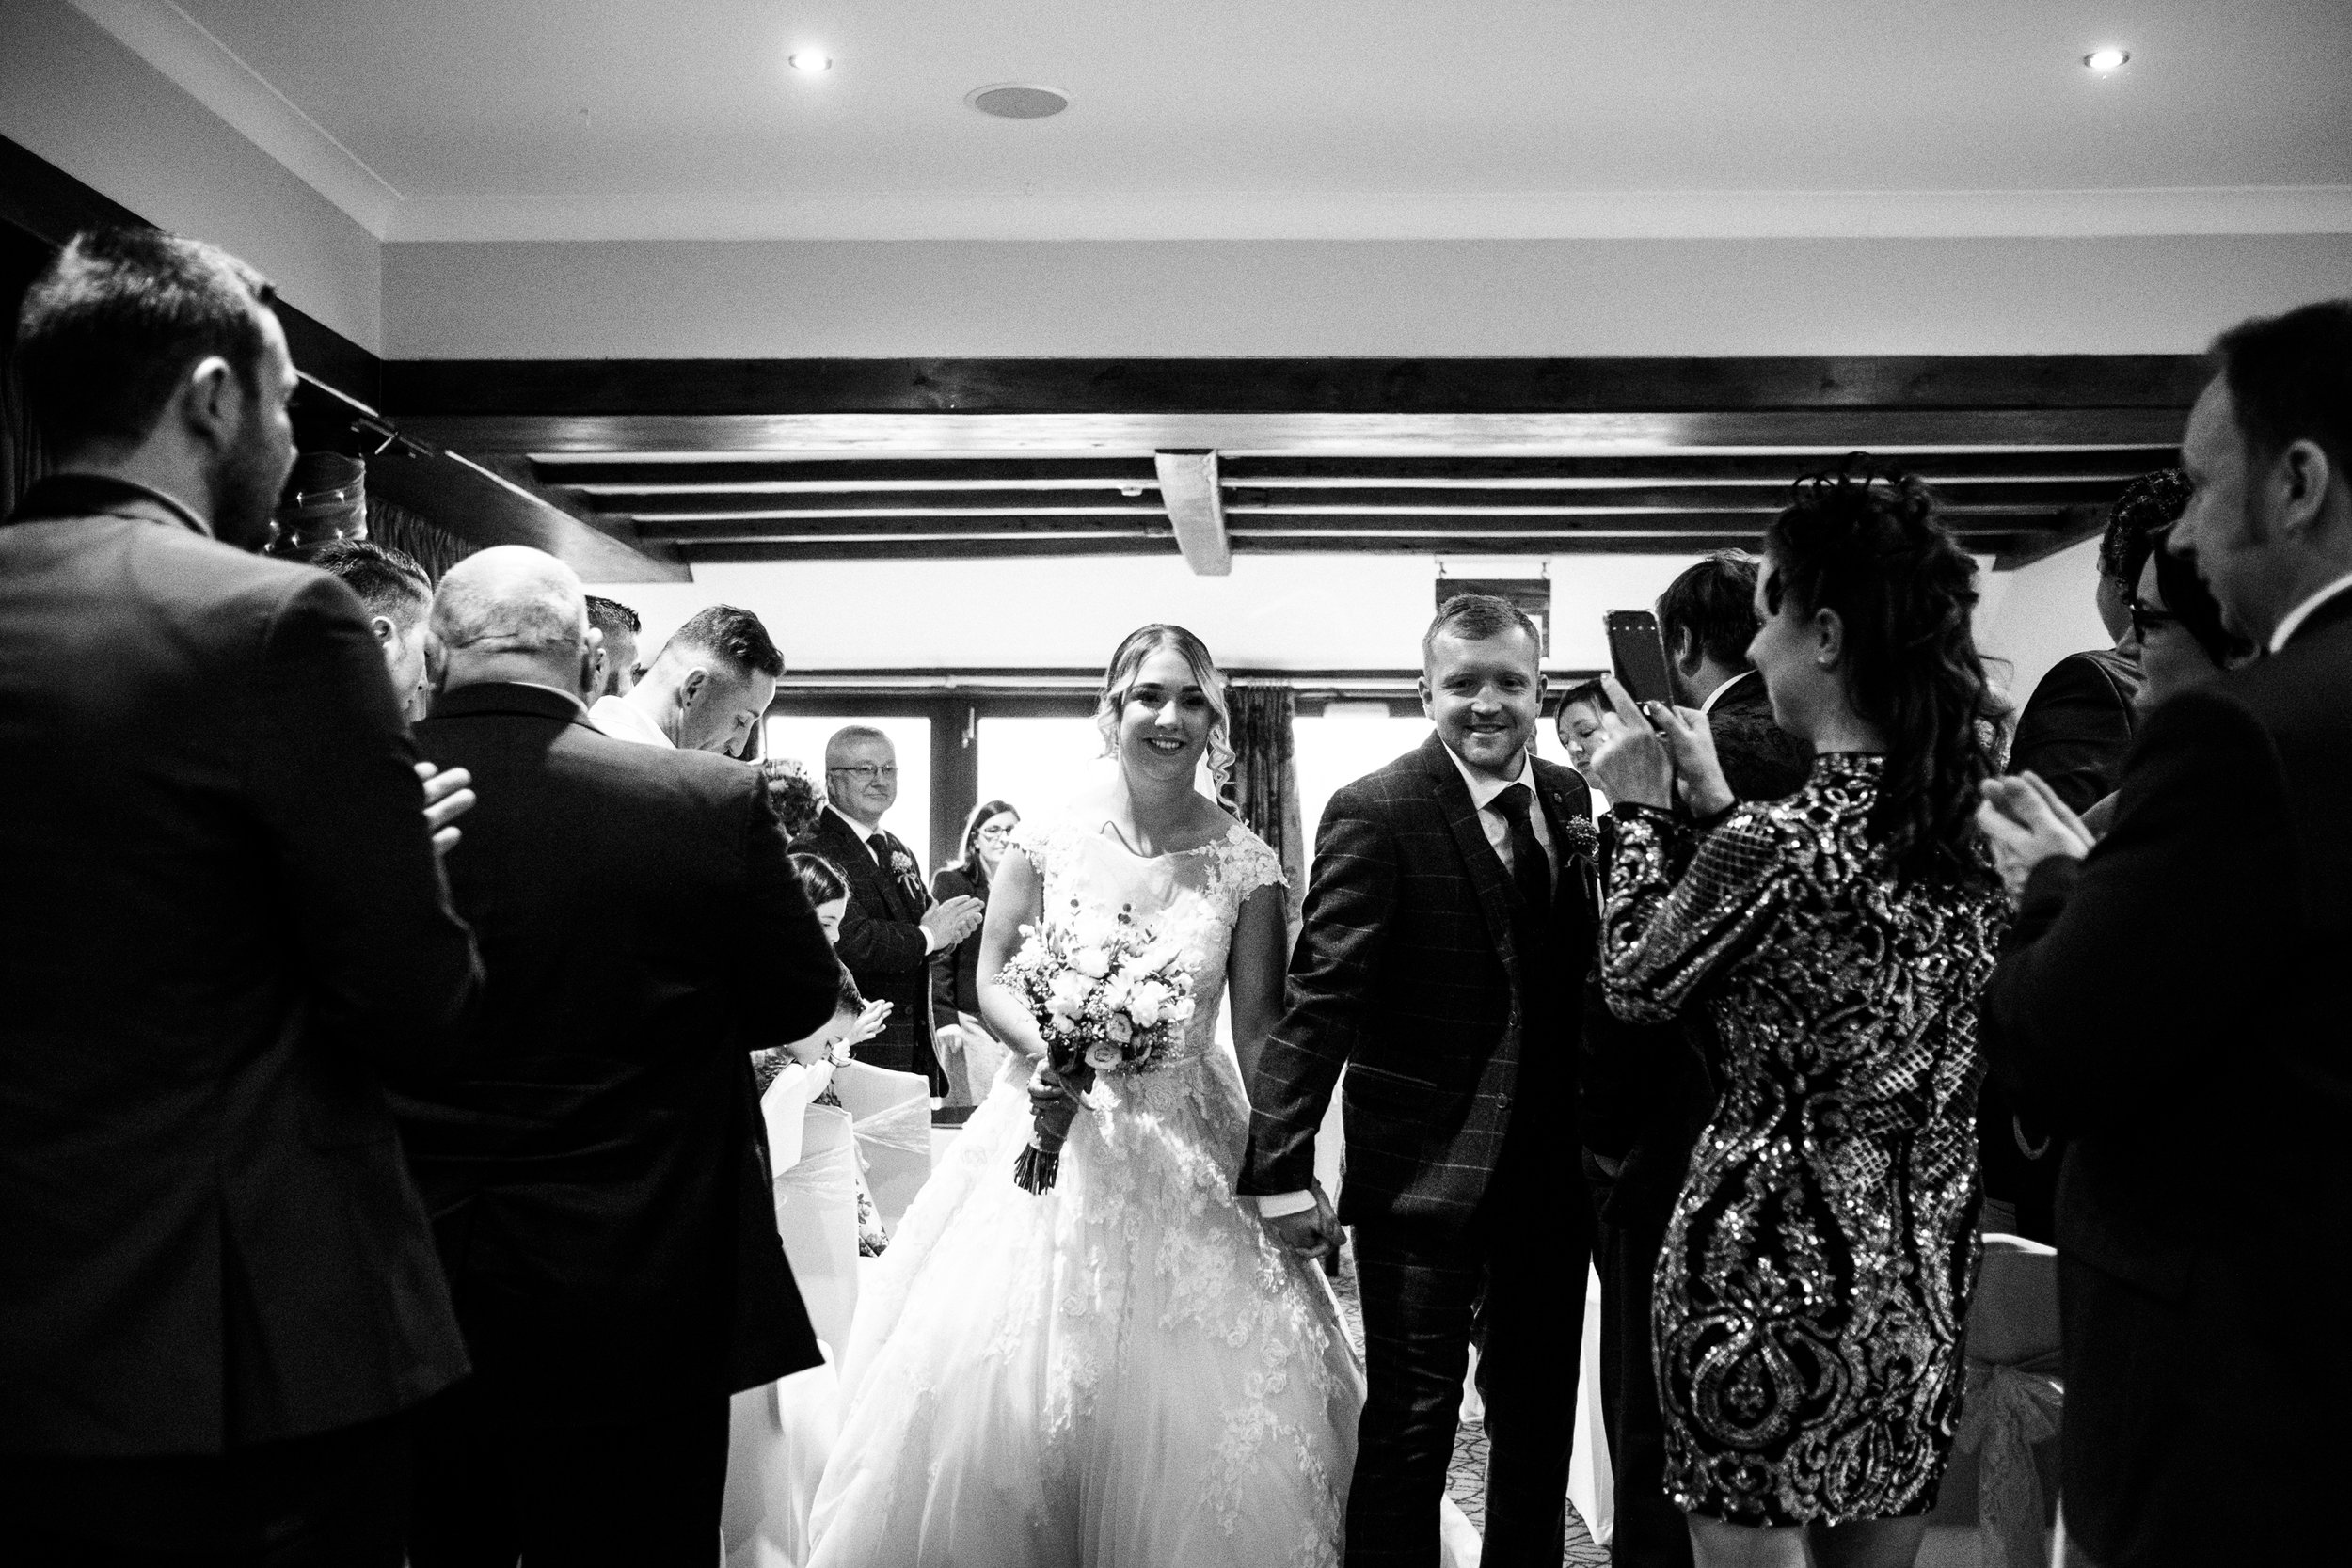 Autumn Wedding Photography at The Three Horseshoes, Blackshaw Moor, Staffordshire Moorlands - Jenny Harper-29.jpg